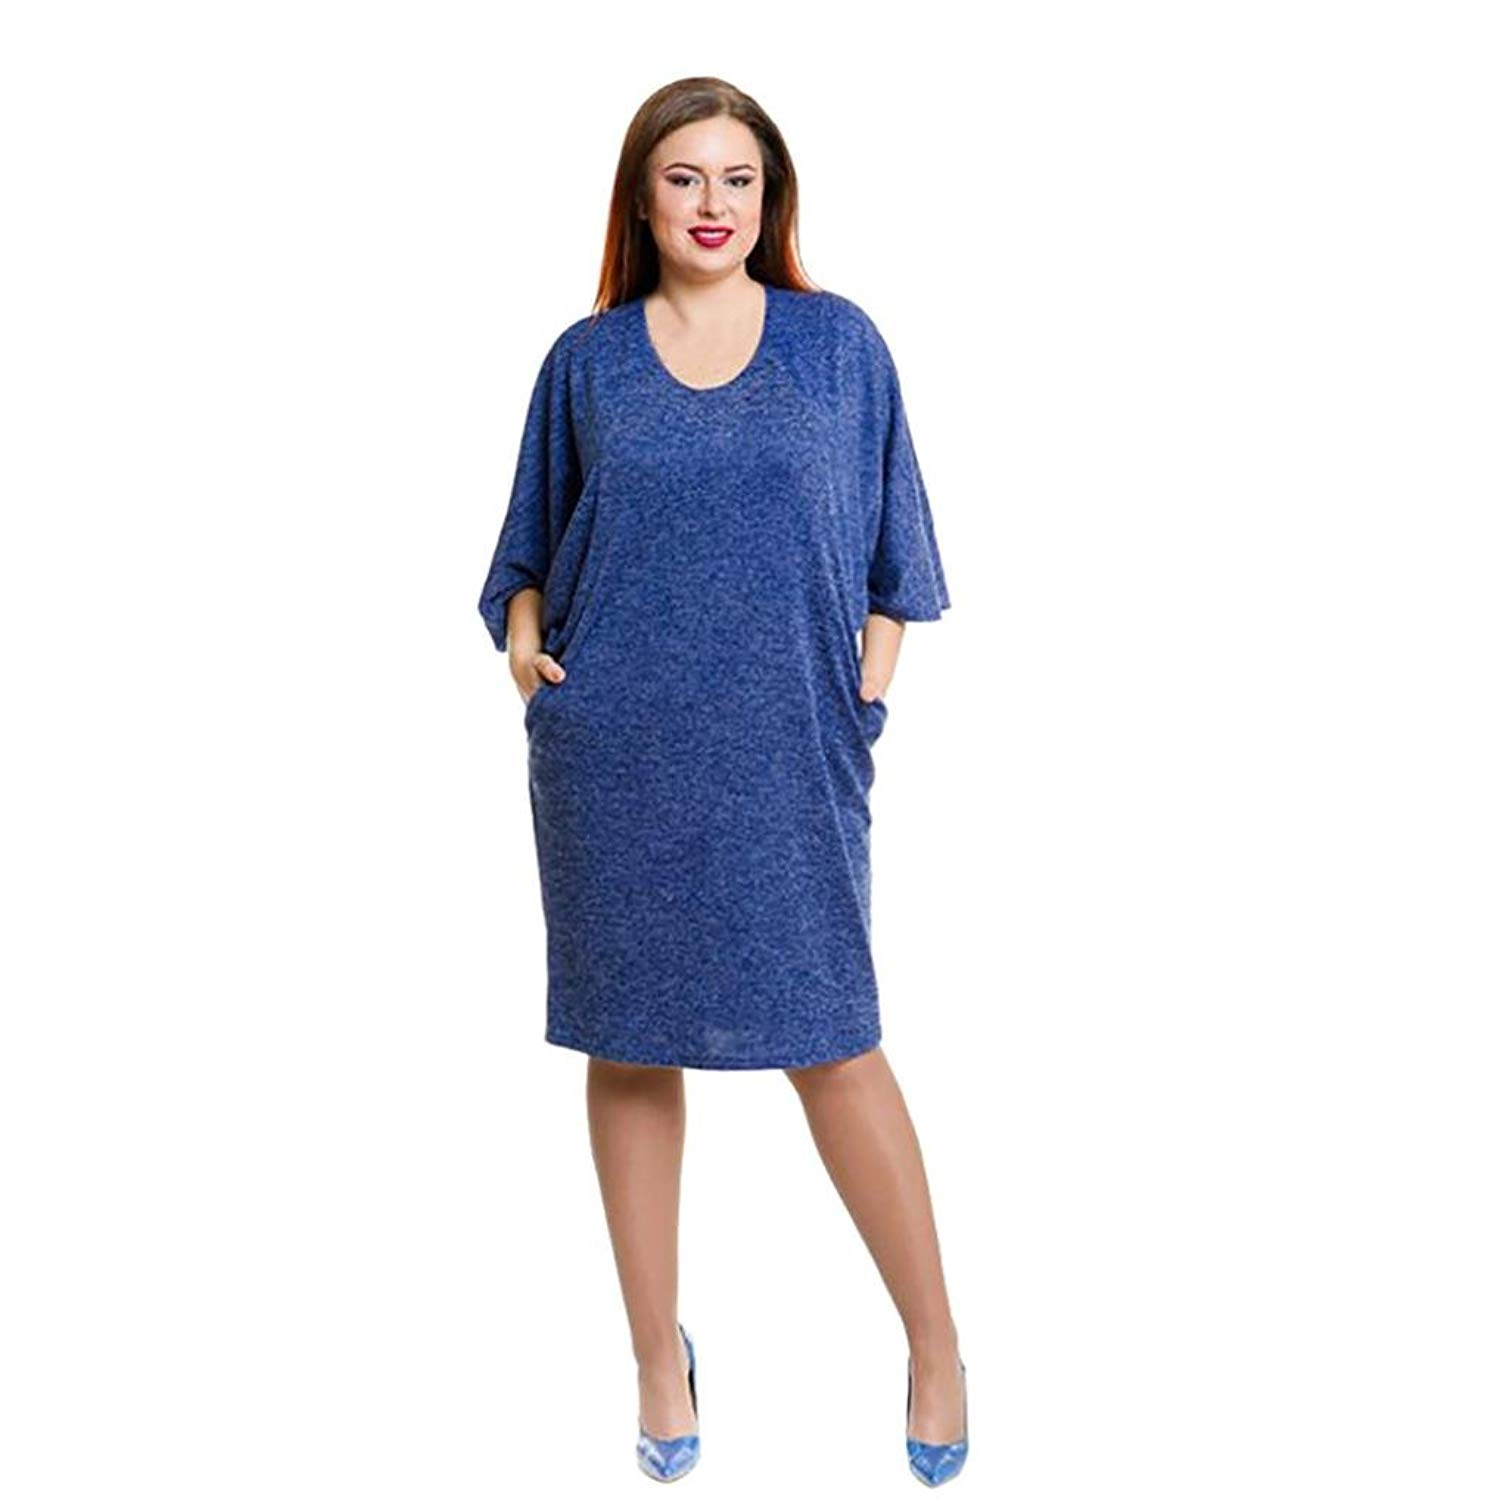 326de51581e1 Get Quotations · KESEE Plus Size Dress Women Solid Three Quarter Sleeve  Casual Loose Party Dress 3 4